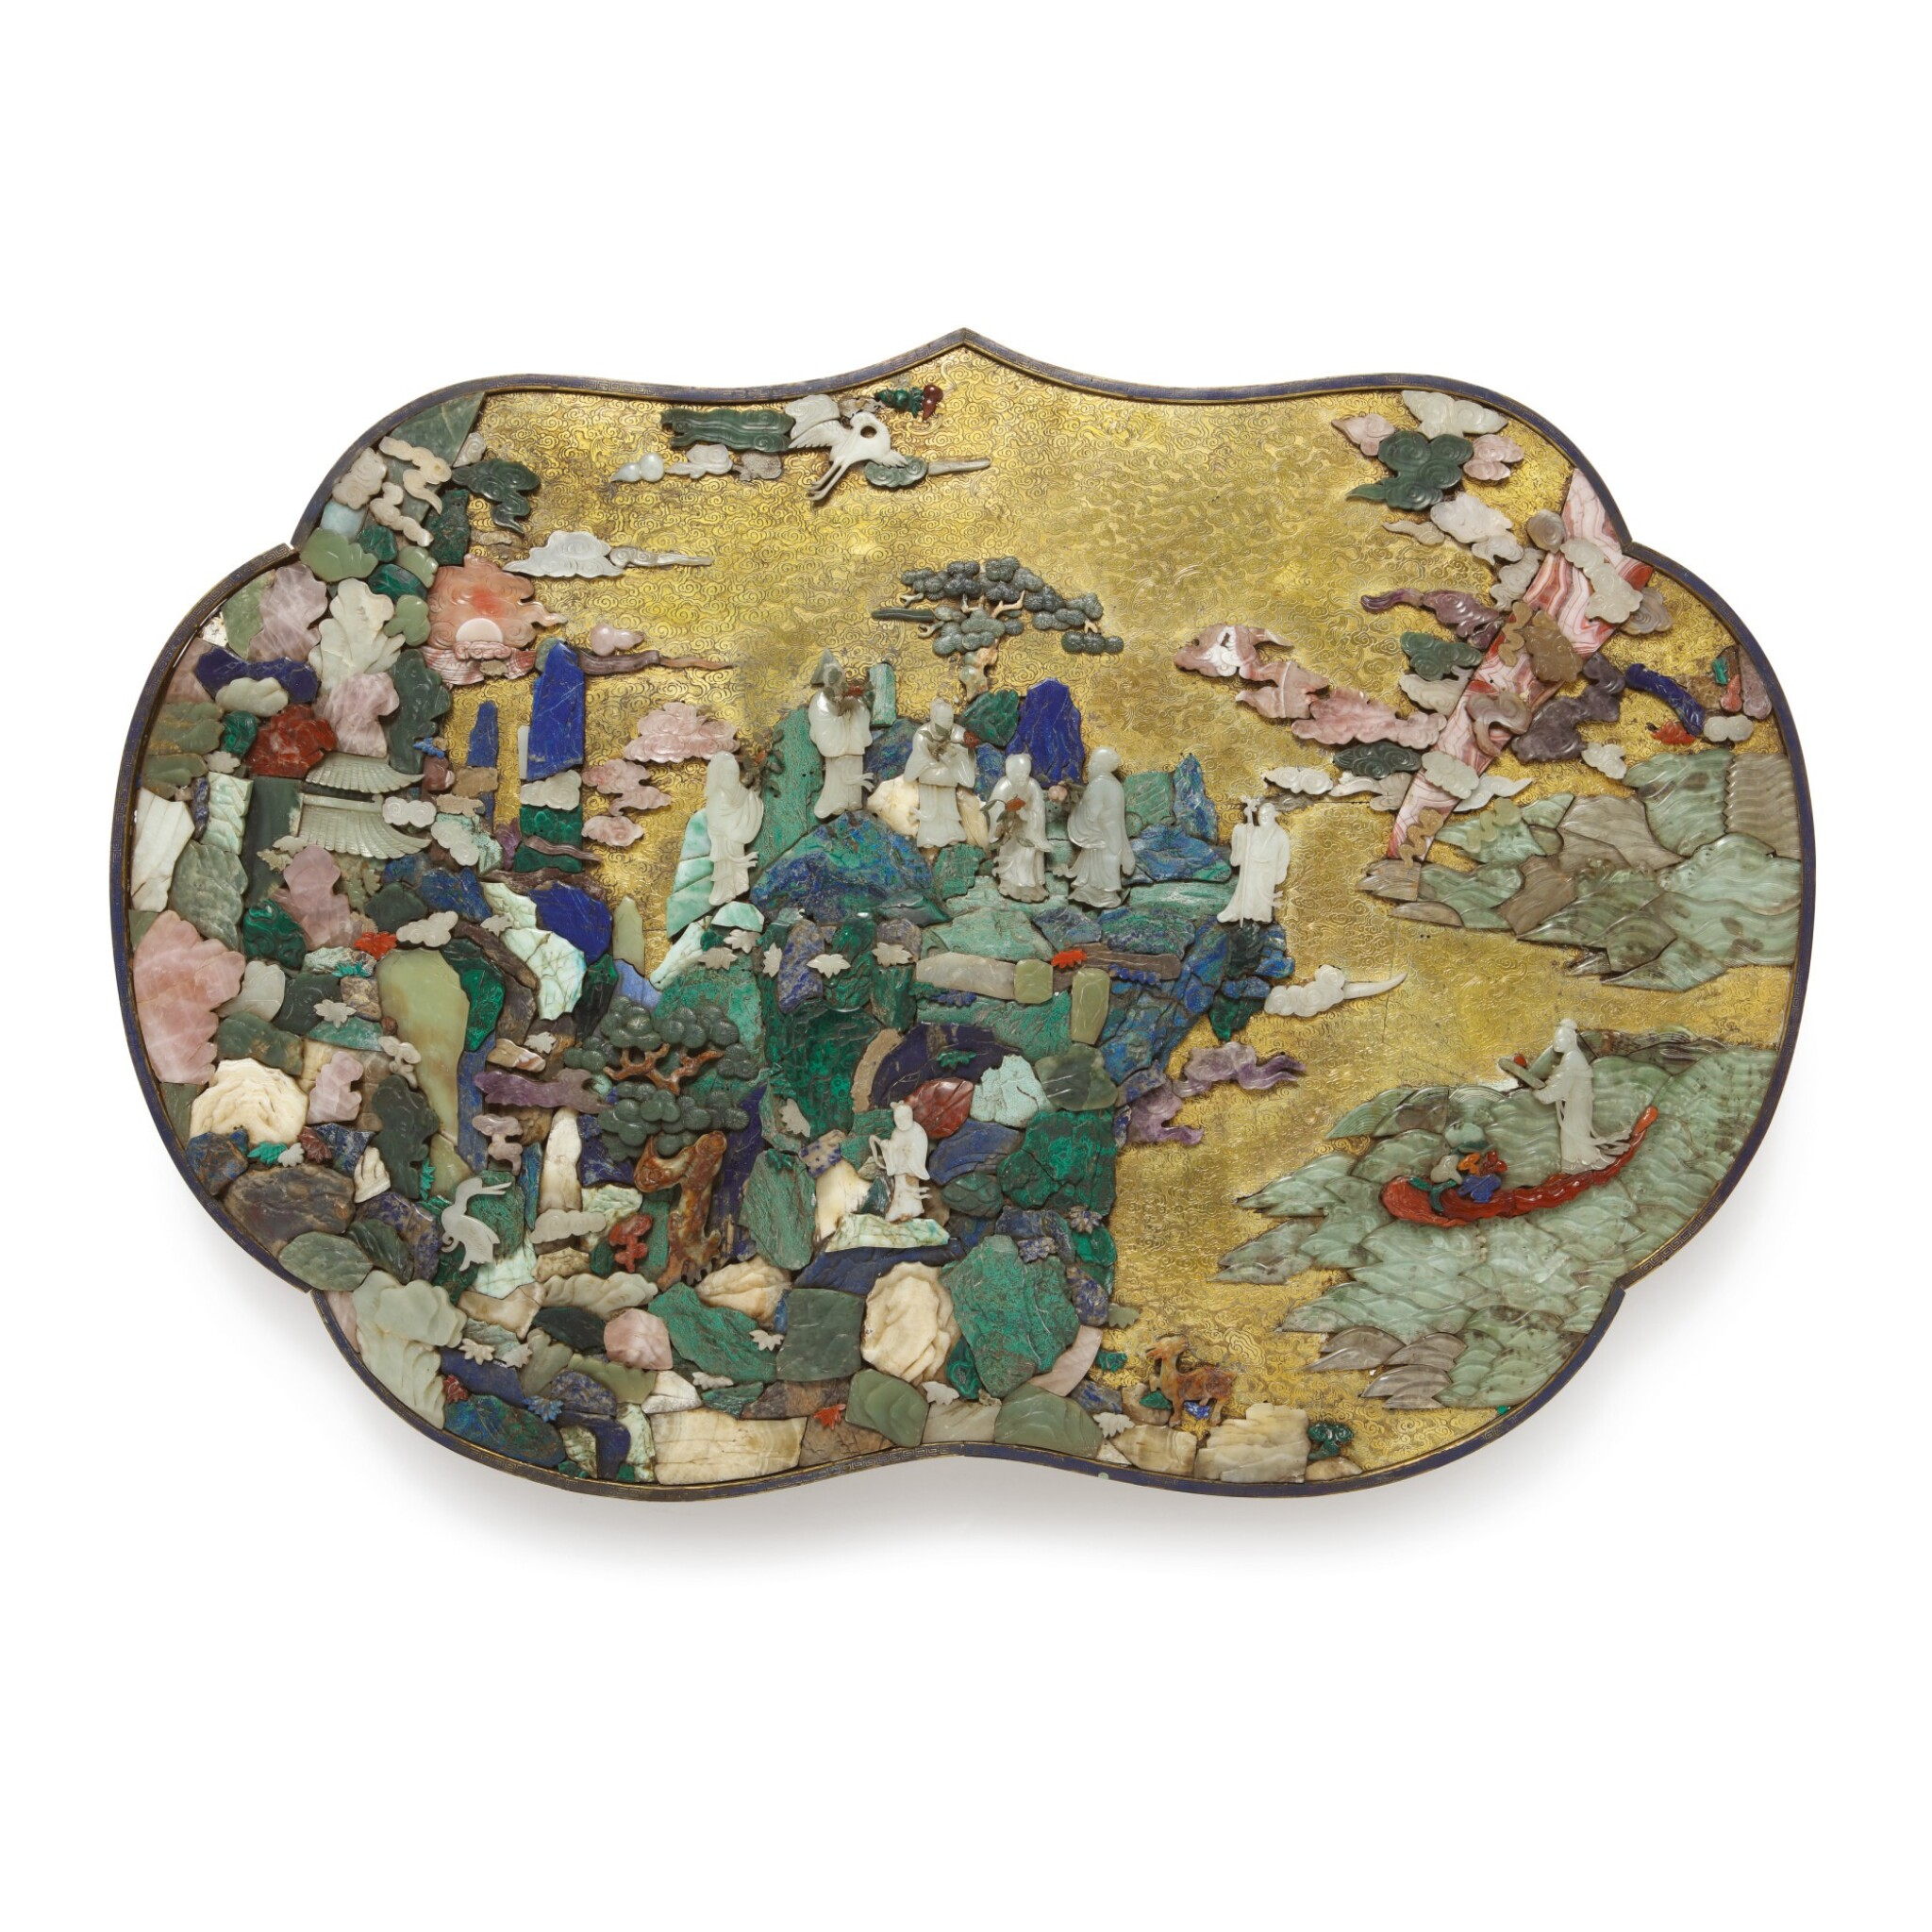 View 1 of Lot 669. AN EXTRAORIDINARY AND RARE 'DAOIST IMMORTALS' HARDSTONE-INLAID PANEL, QING DYNASTY, QIANLONG PERIOD.